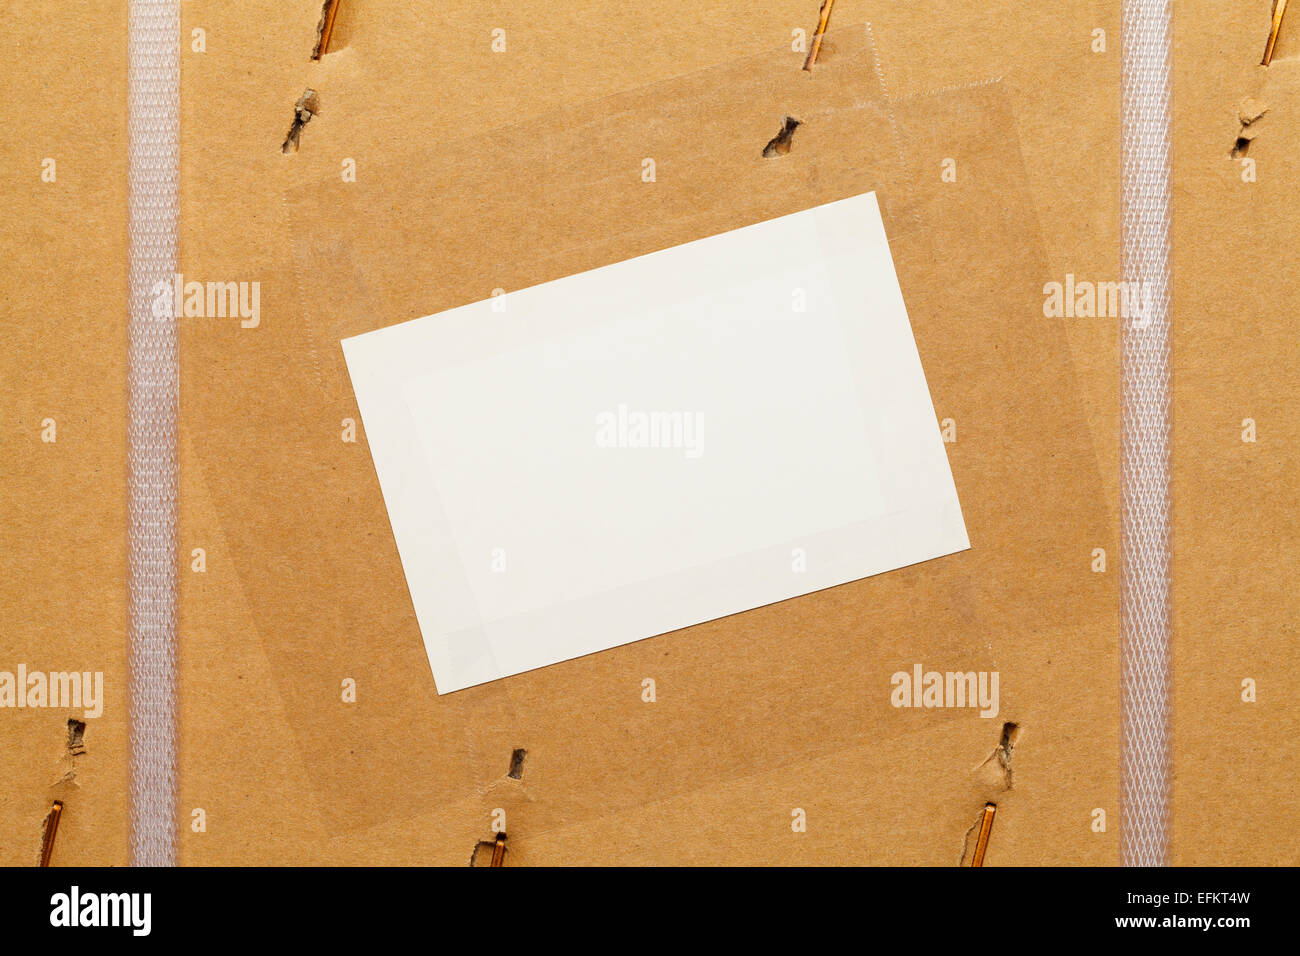 Cardboard Box with Large Staples, Plastic Straps and Blank Label. - Stock Image